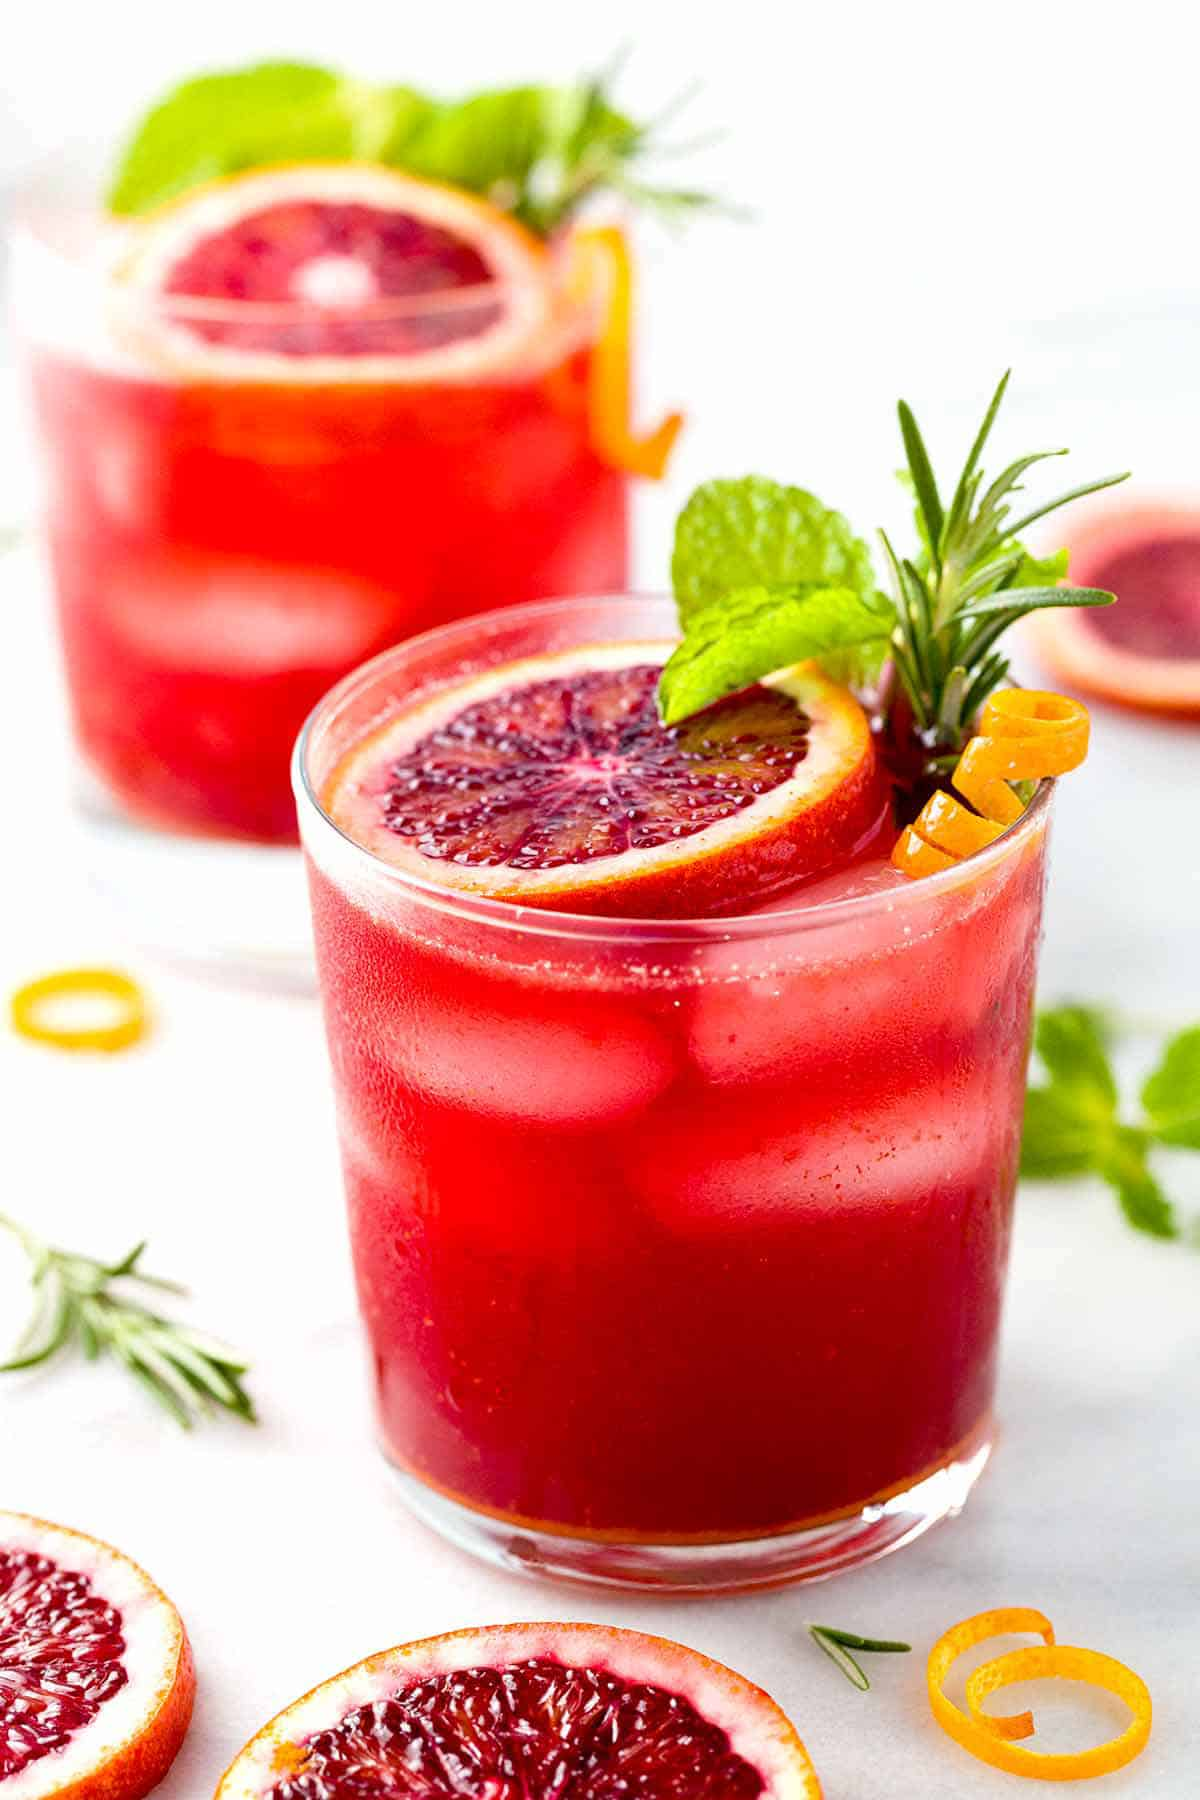 Blood orange mocktail with turmeric + 15 Farmers market recipes to make in March! Delicious, vegetarian, late winter/ early spring, (mostly) healthy recipes made with fresh, seasonal produce from your local farmers market or CSA bin. Eat local!